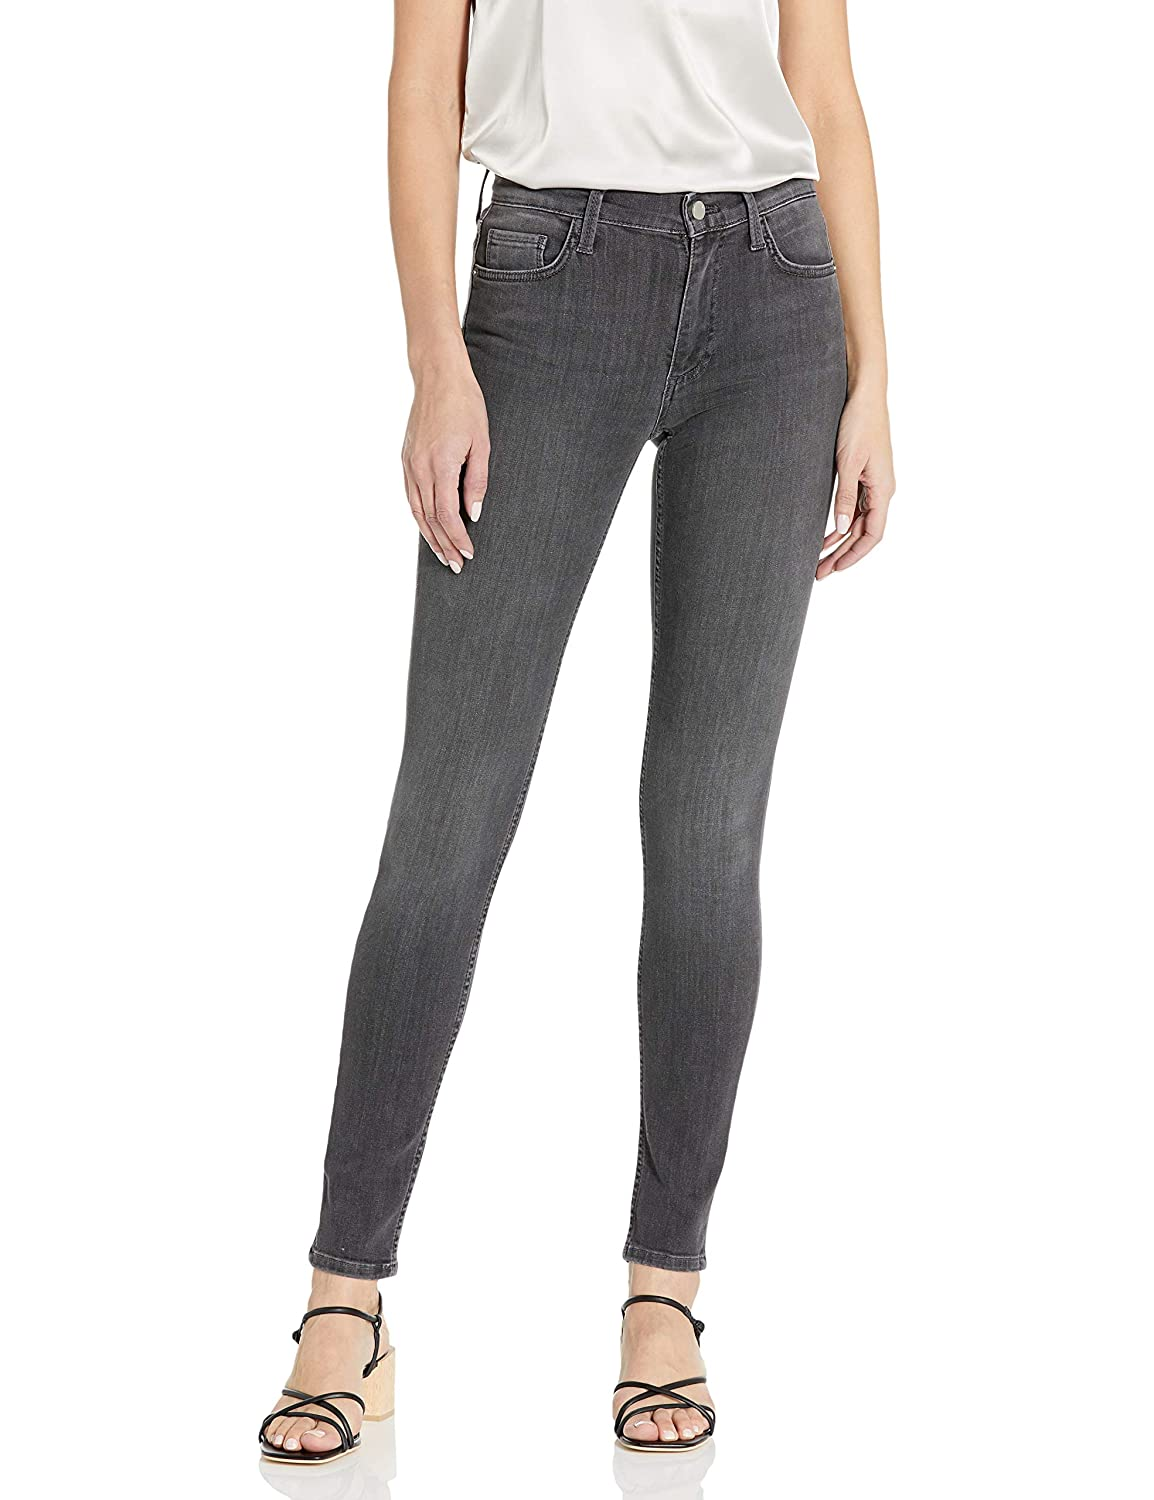 French Connection Womens Skinny Rebound Denim